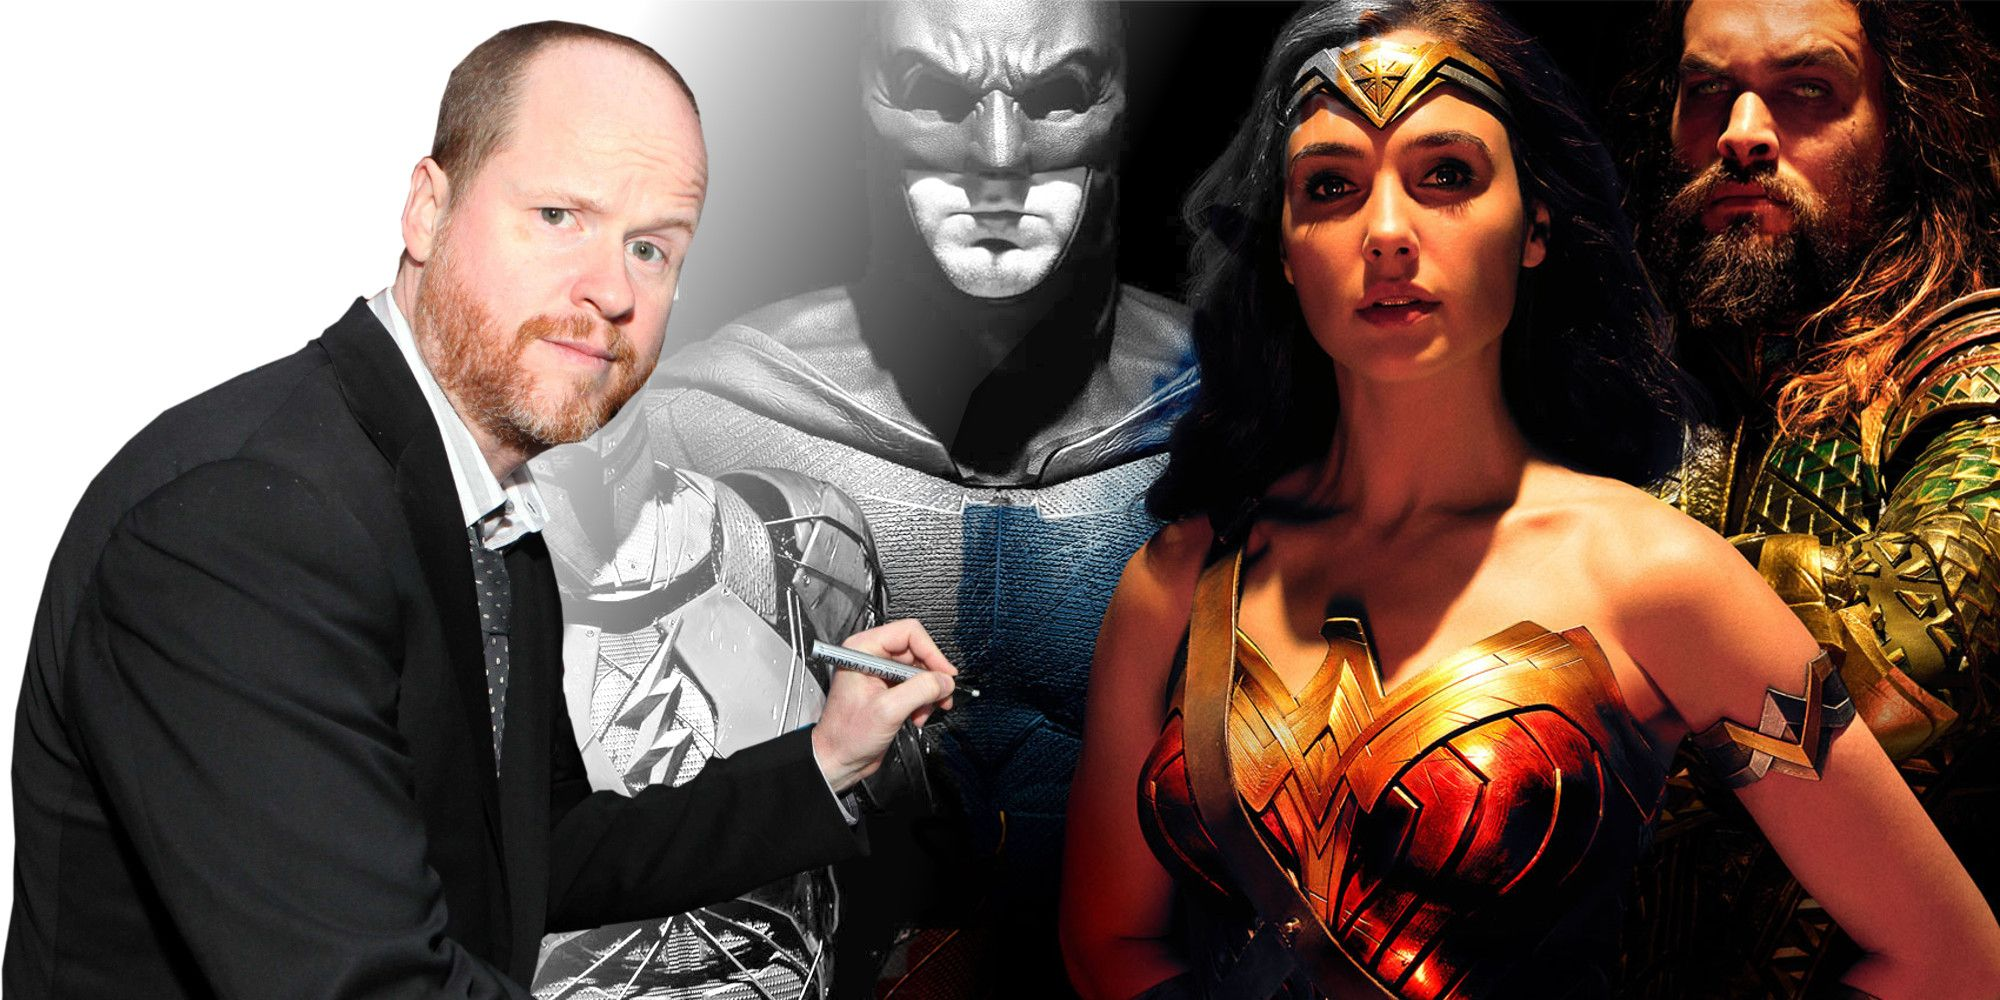 Justice League's Gal Gadot Confirms She Had An On-Set Issue With Joss Whedon